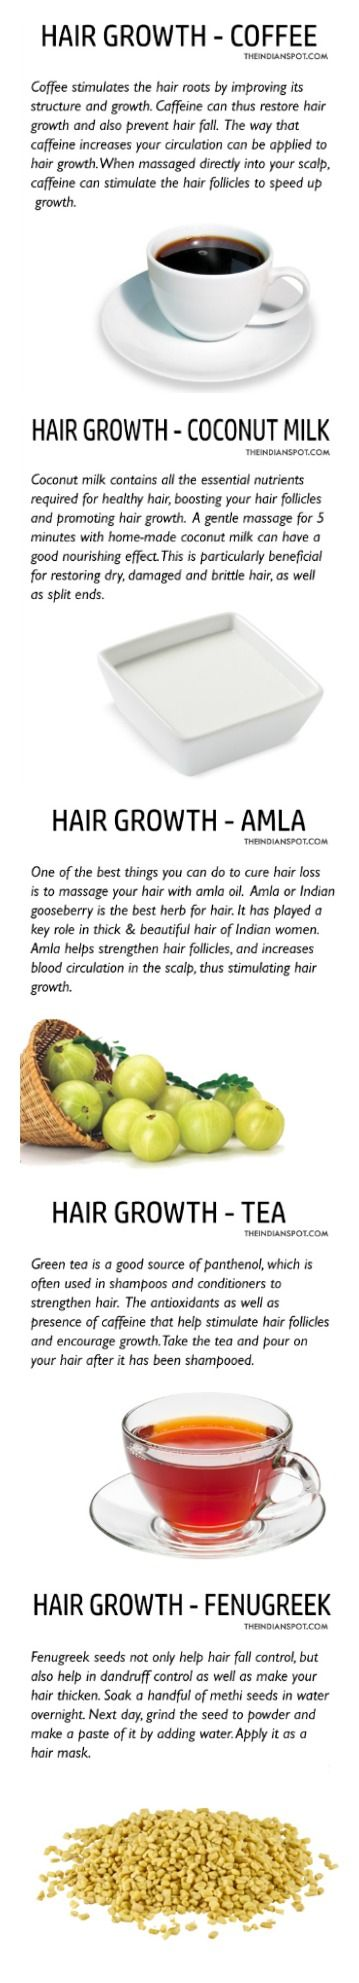 Hair growth treatments